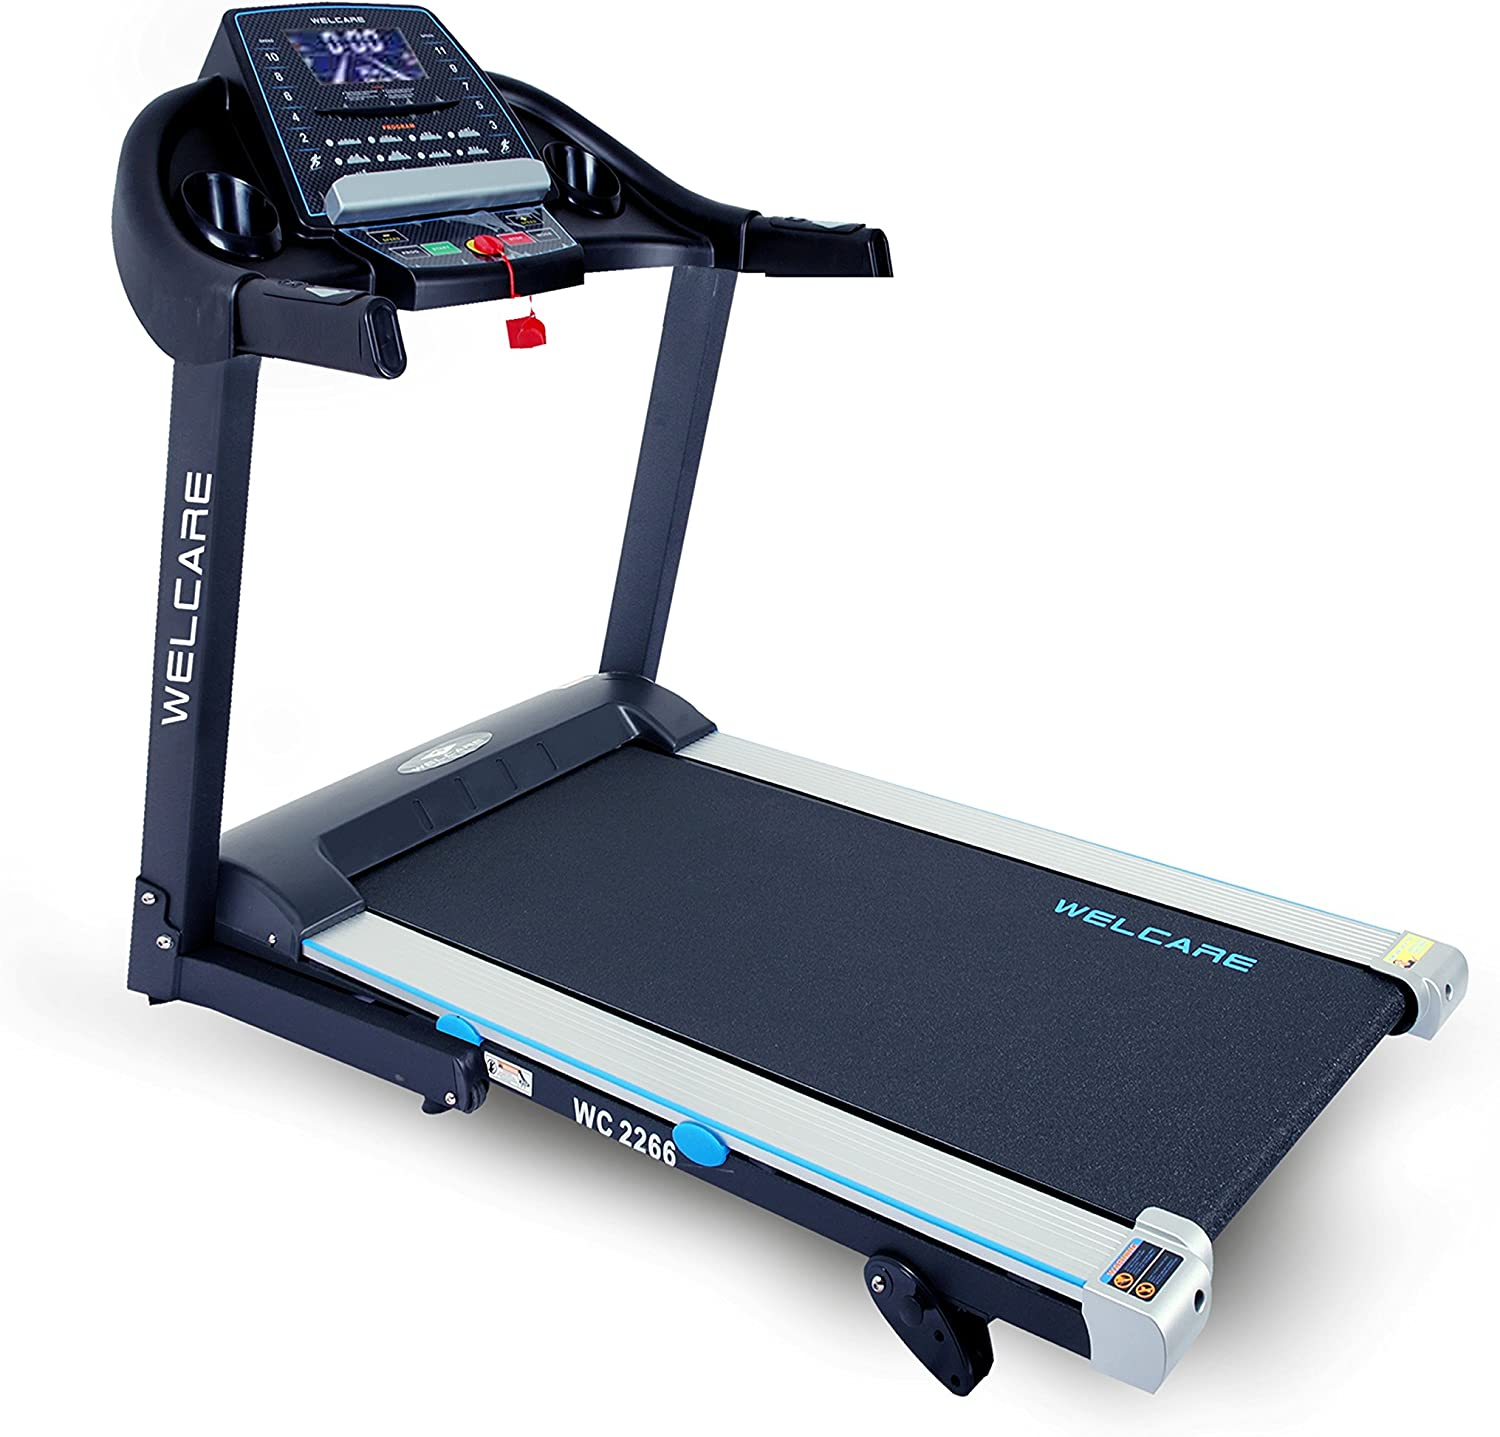 WELCARE WC2266, 4 Hp Peak DC Motorized Folding Treadmill